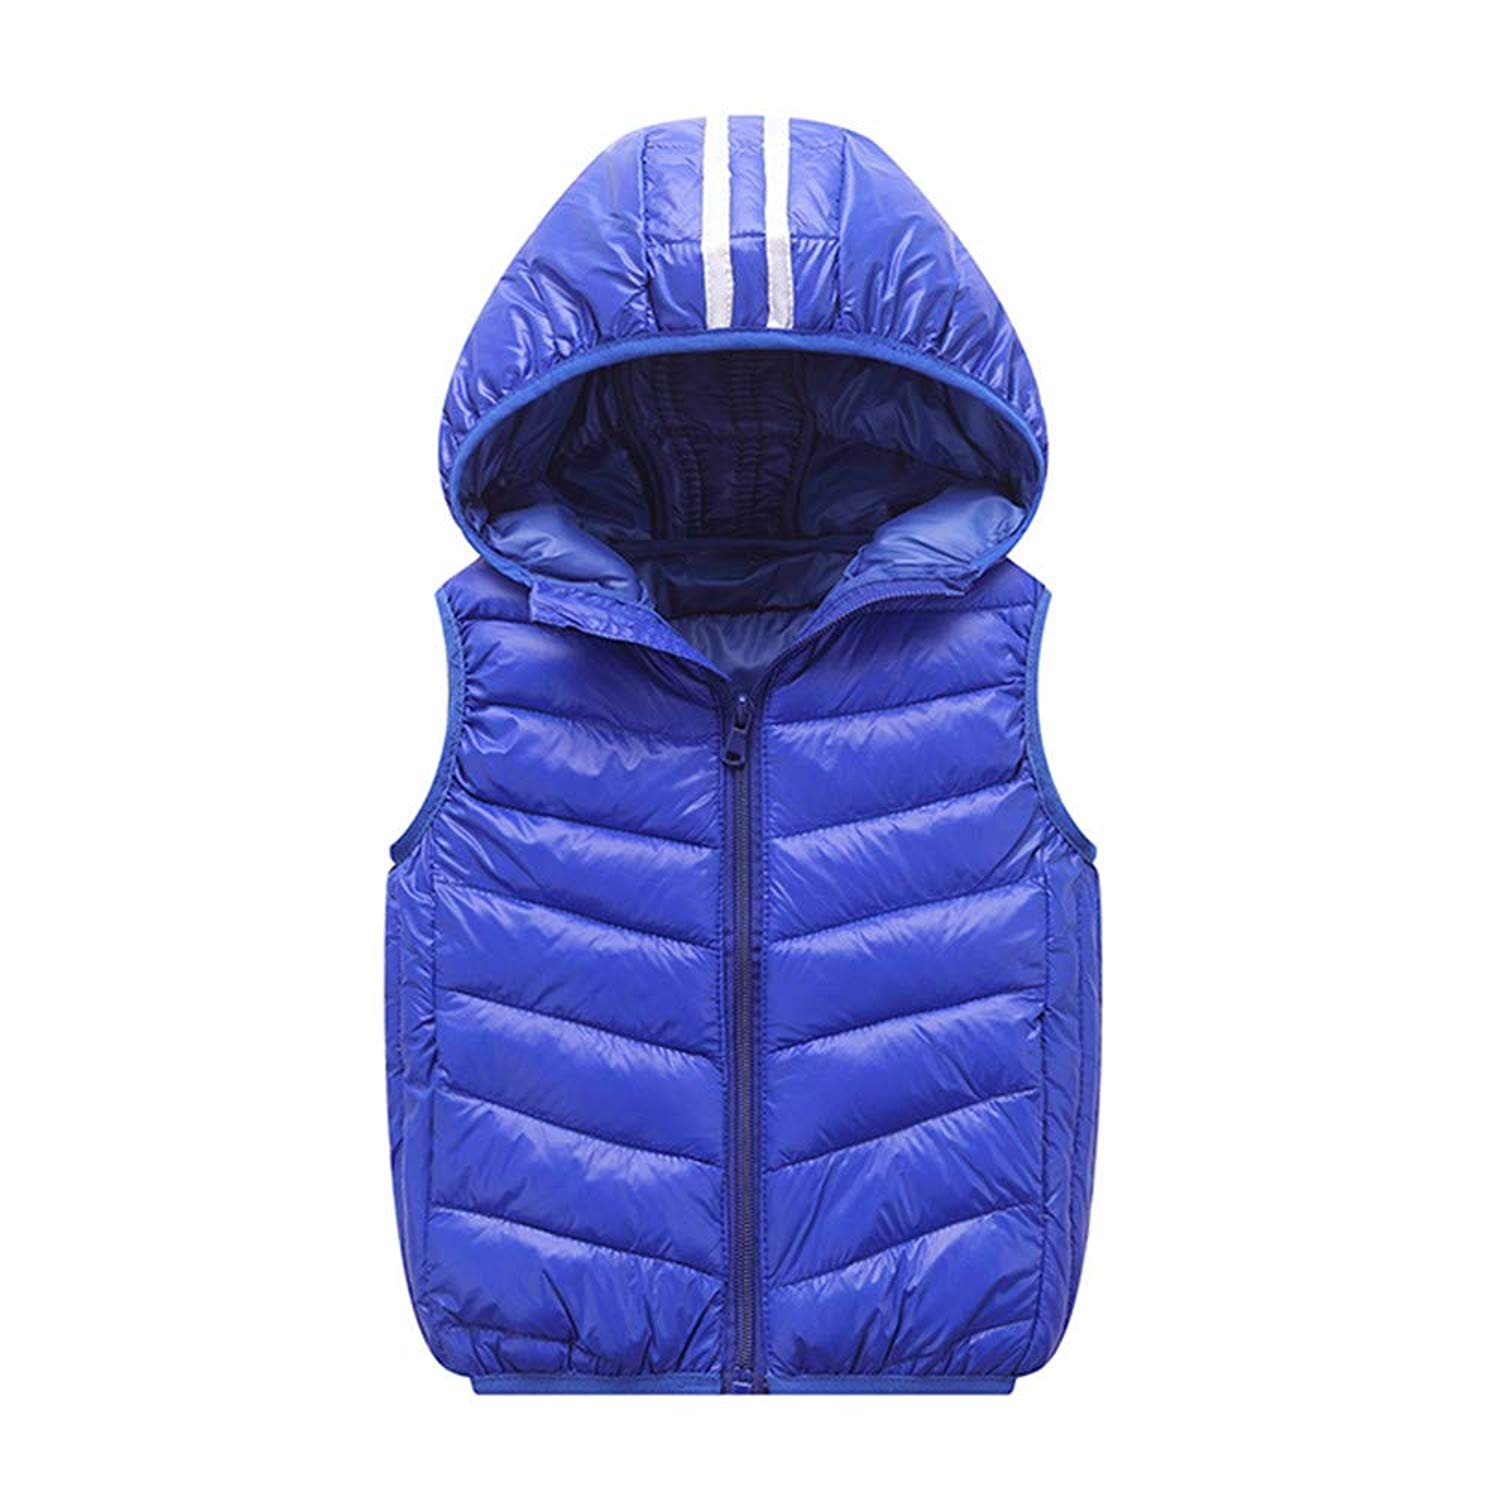 54c33aff5 Outtop(TM) Baby Boys Girls Down Jackets Coats Toddler Children Winter Warm  Zip Thick